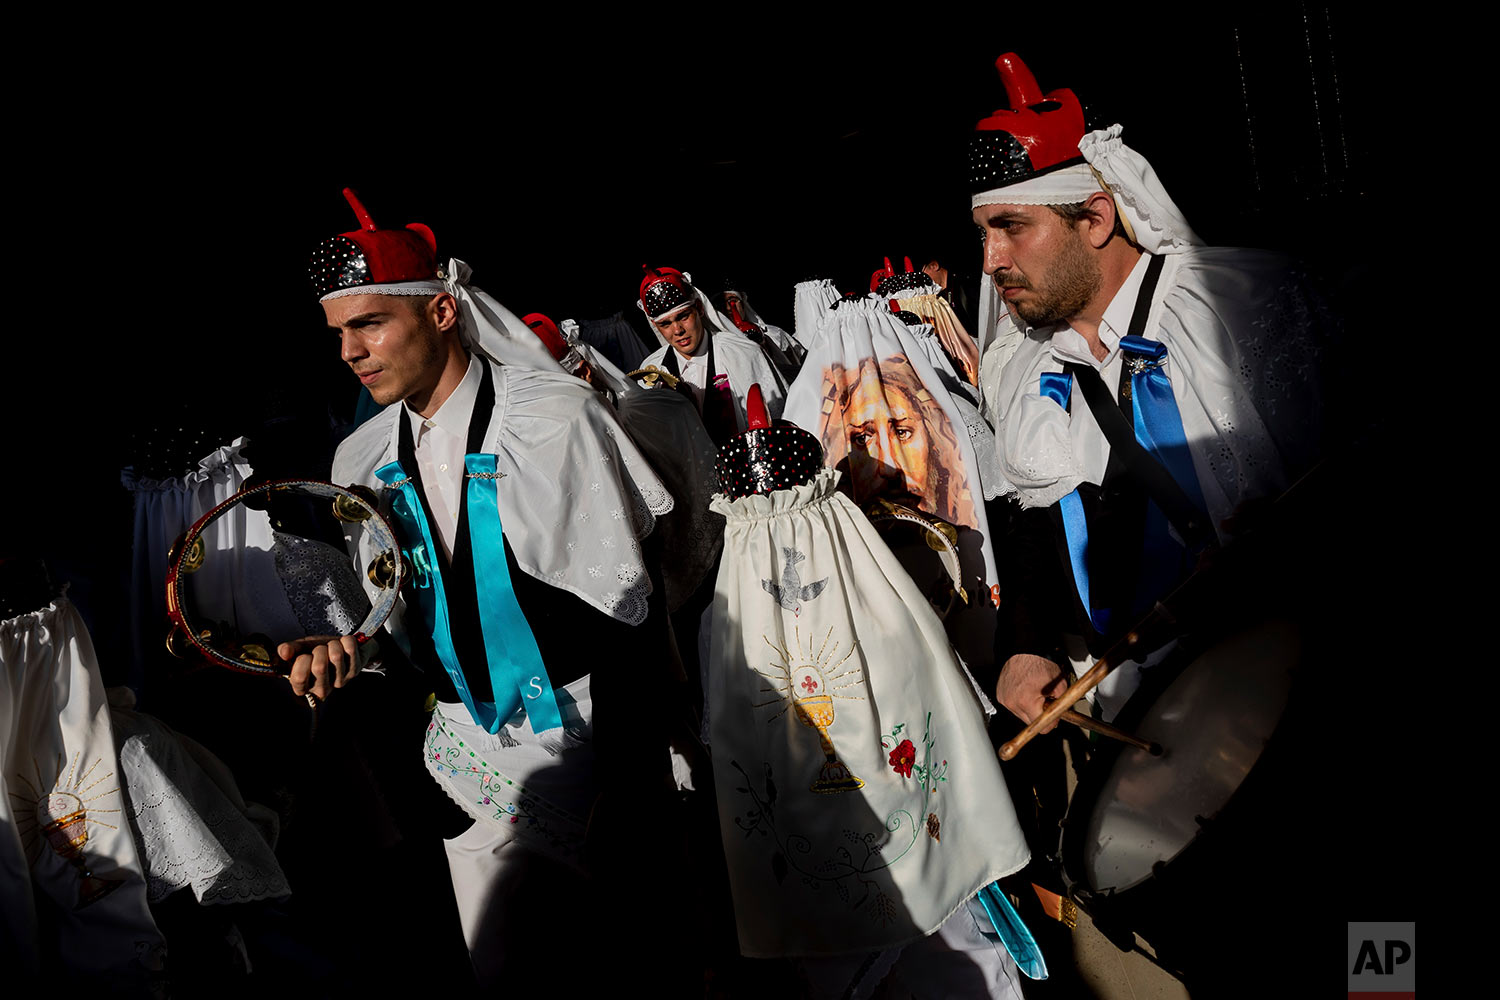 "In this Thursday, June 20, 2019 photo, members of the ""Hermandad del santísimo sacramento pecados y danzantes"" brotherhood representing the goodness take part in a Corpus Christi procession in Camunas, central Spain. (AP Photo/Bernat Armangue)"